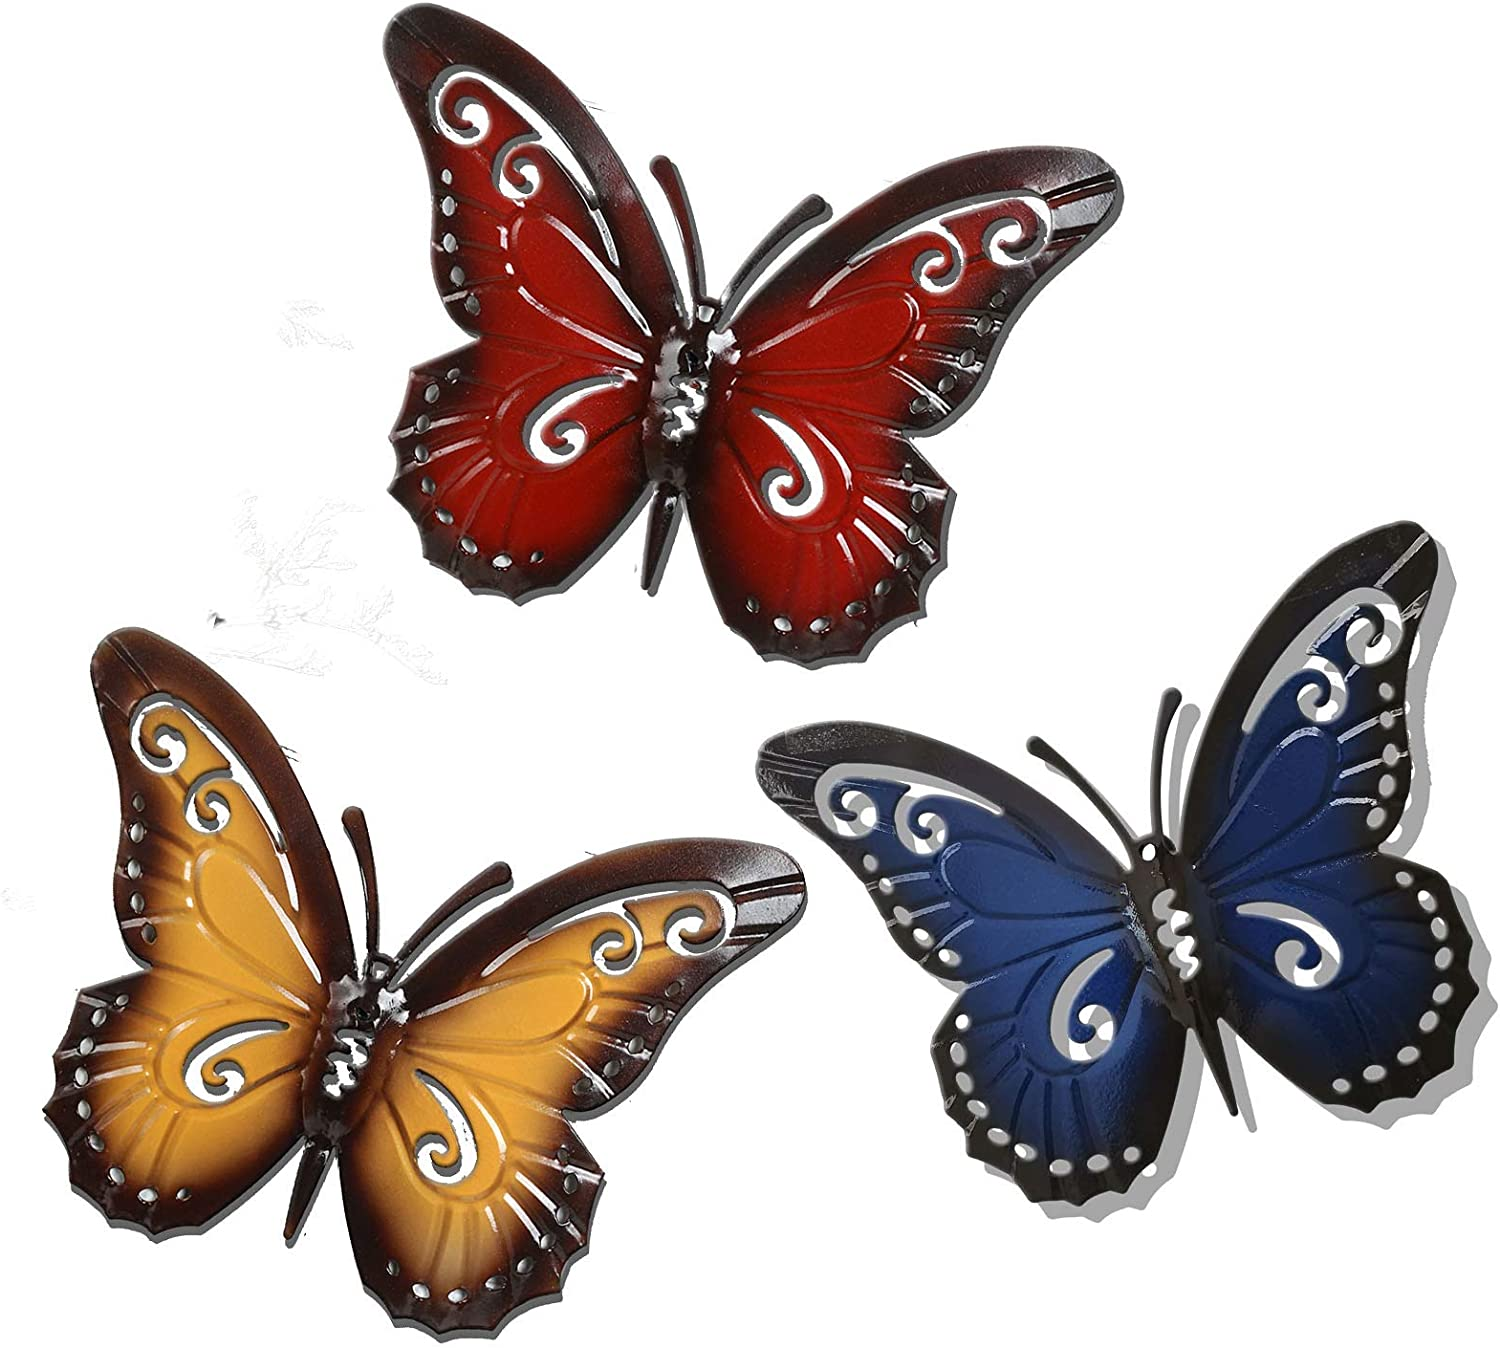 Metal butterfly art, indoor and outdoor hanging wall decoration mural sculpture, 3 pieces